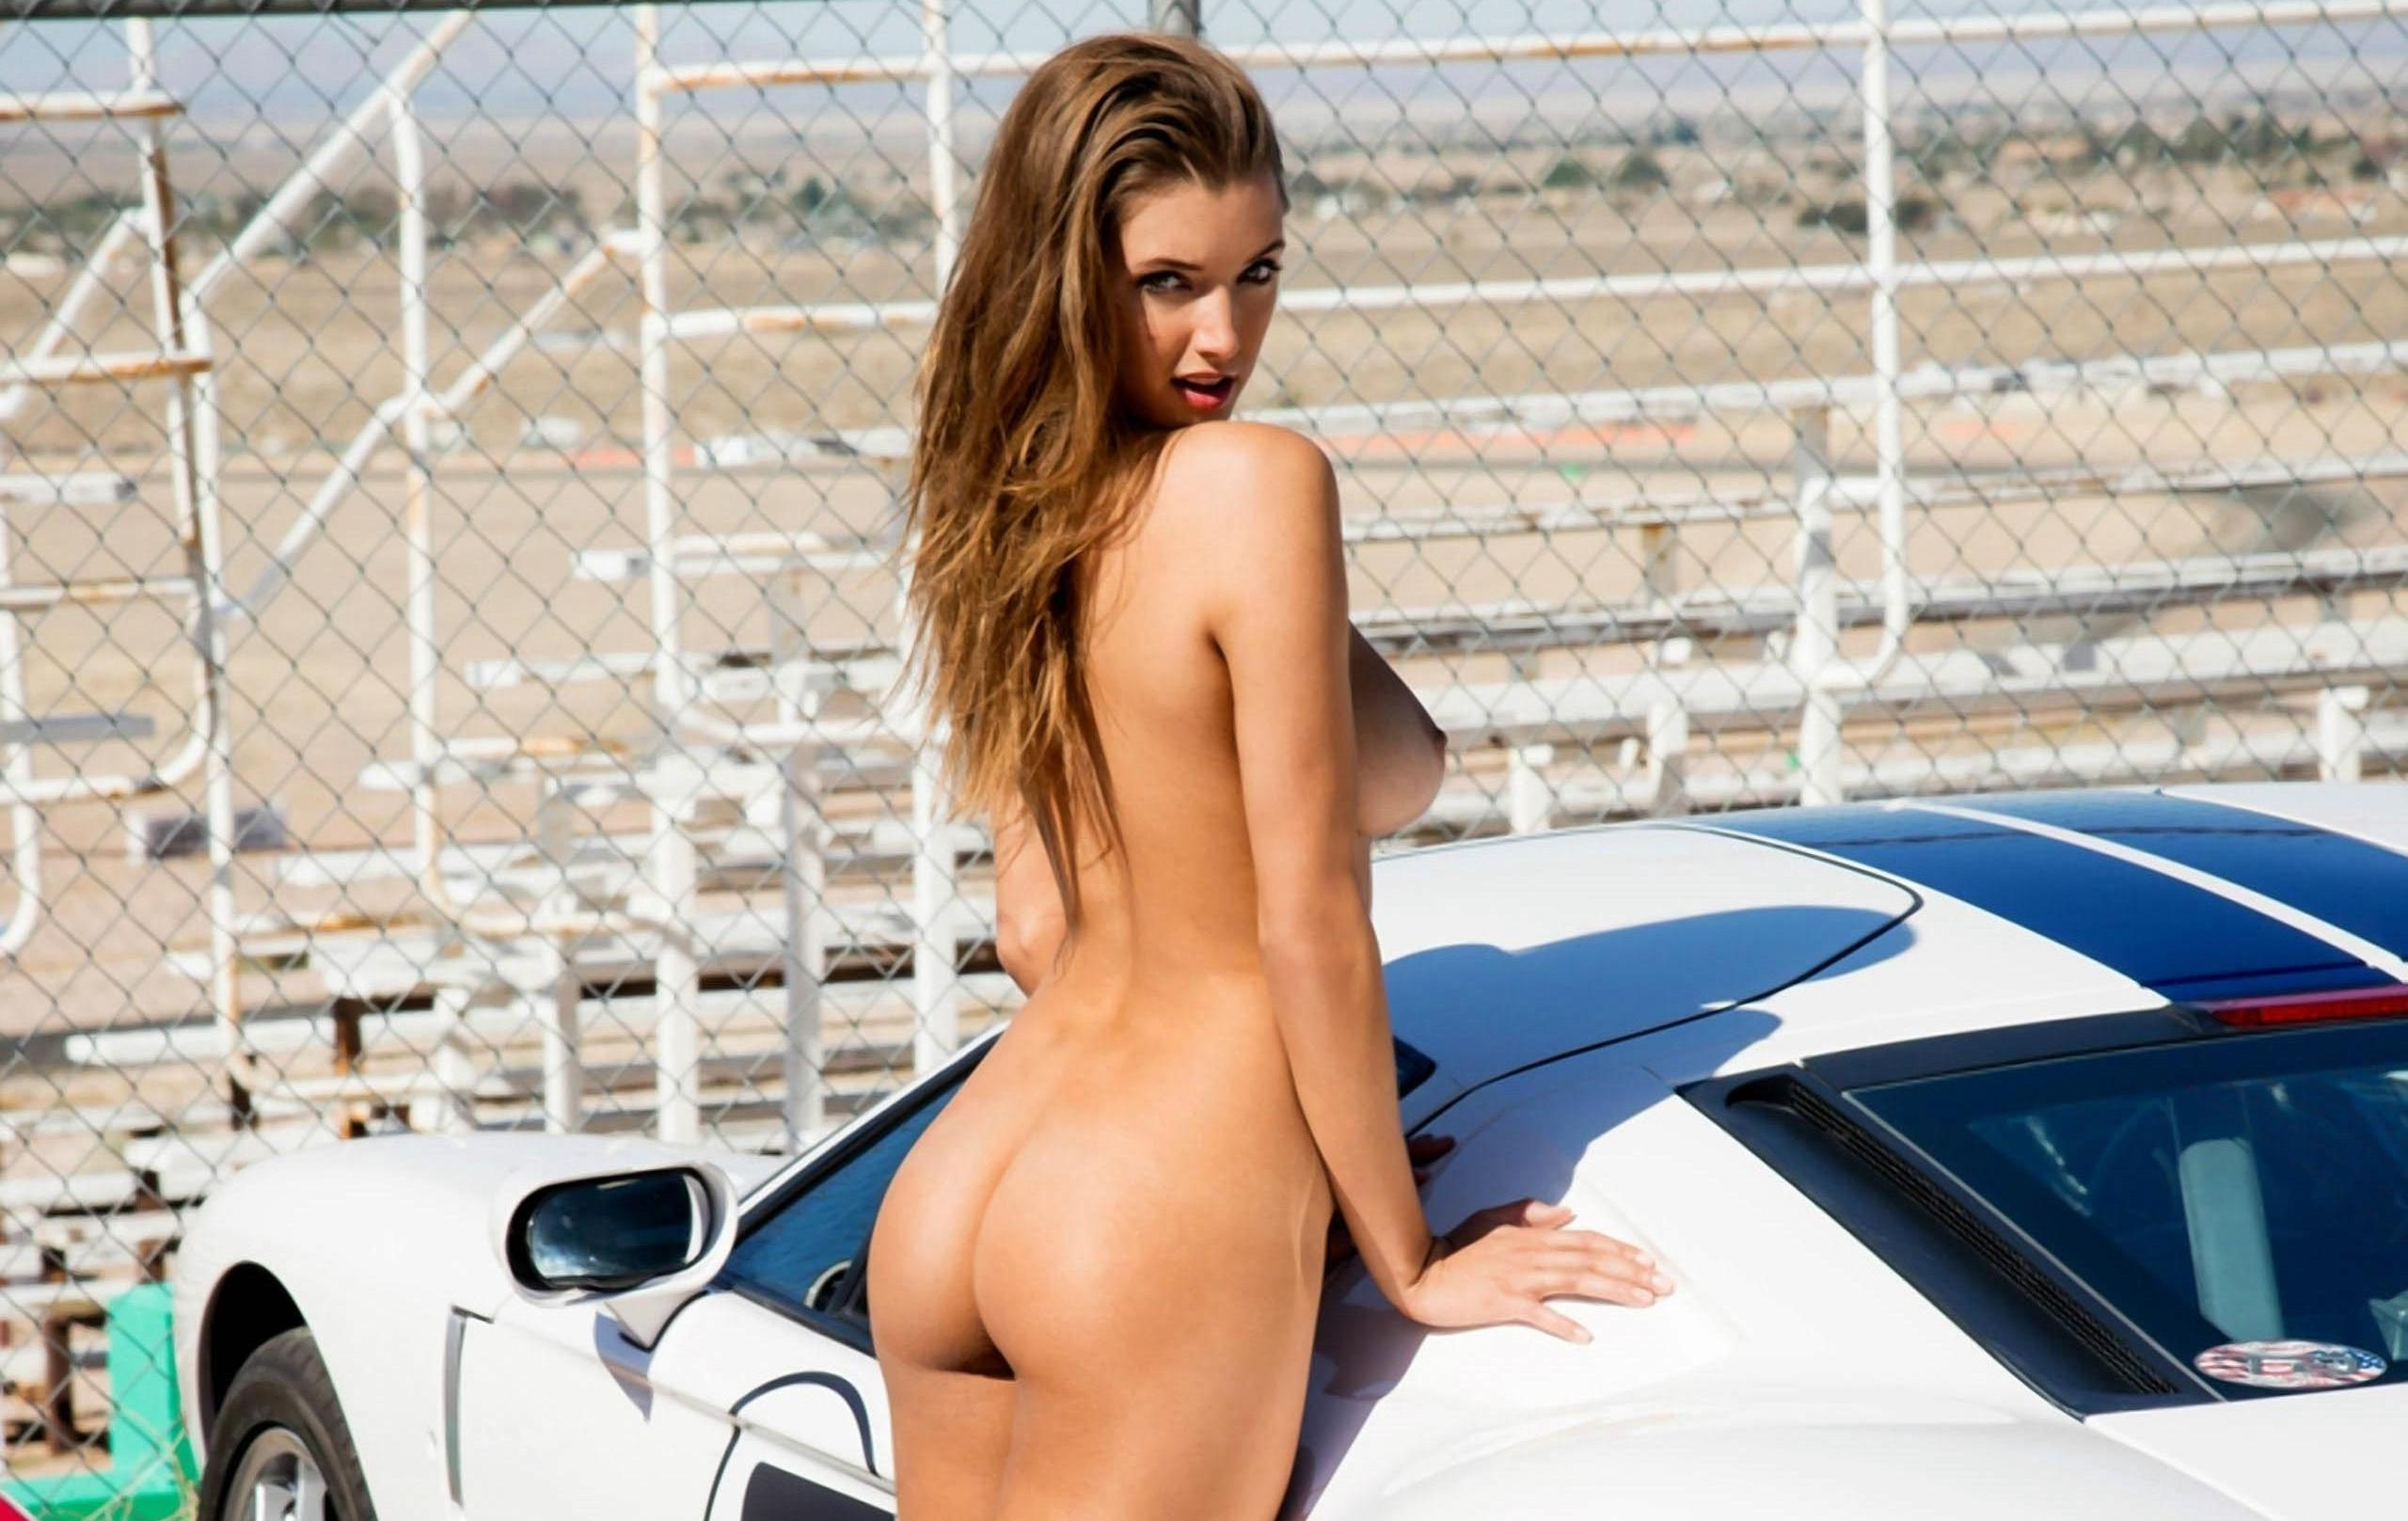 Something is. Alyssa arce nude have